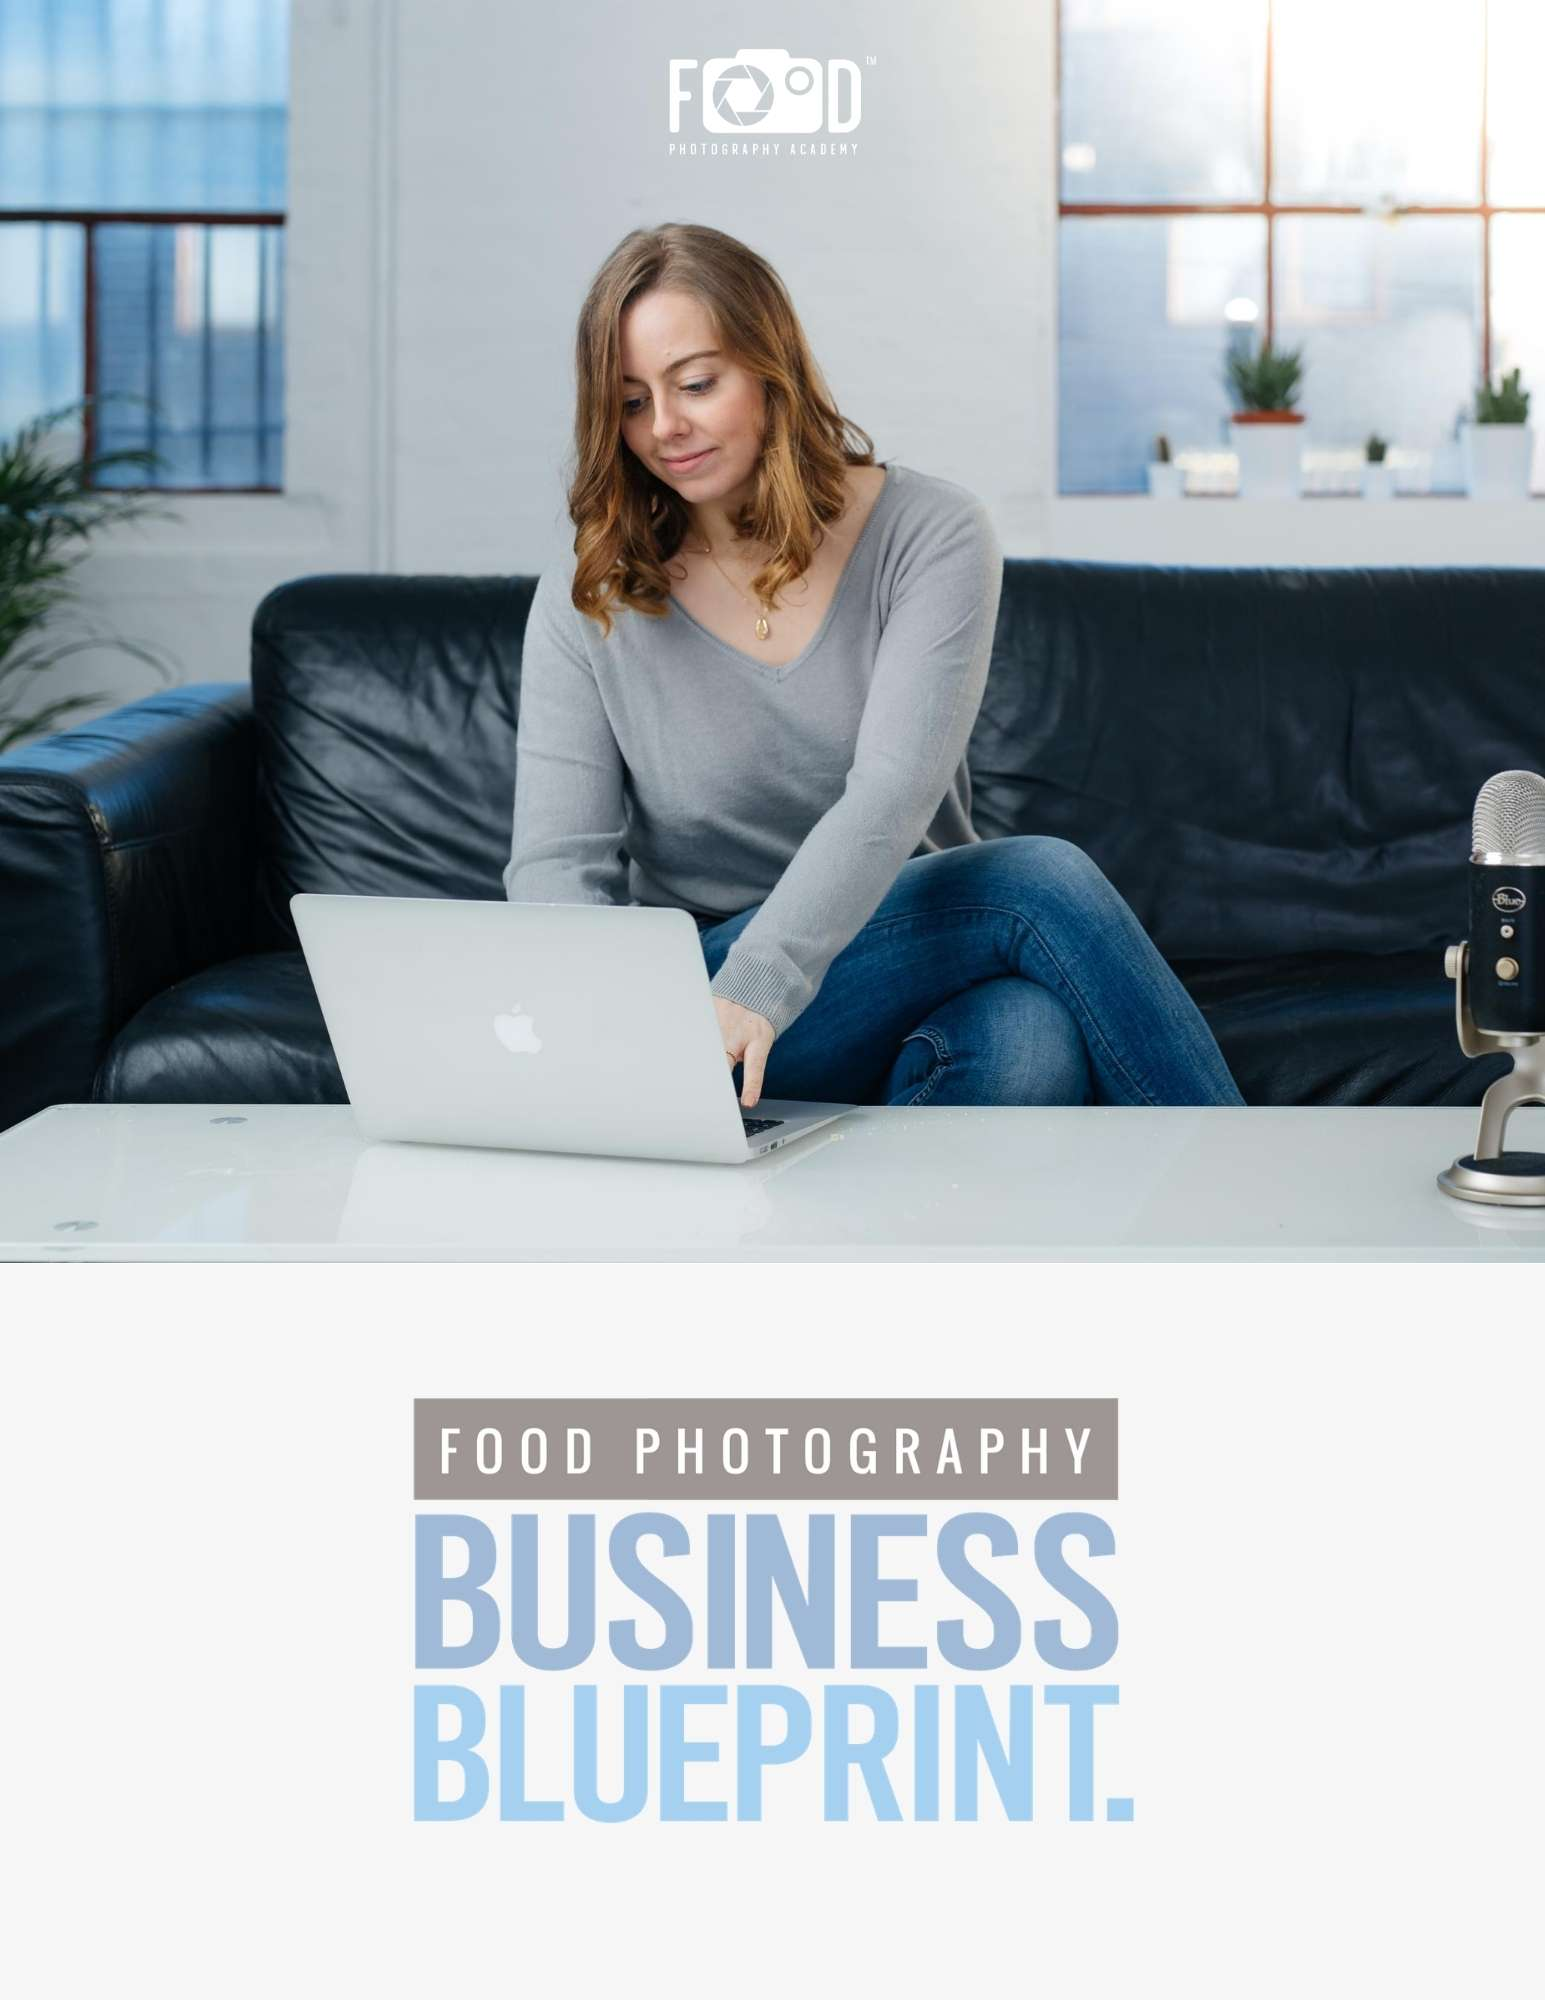 Food Photography Business Blueprint Guide